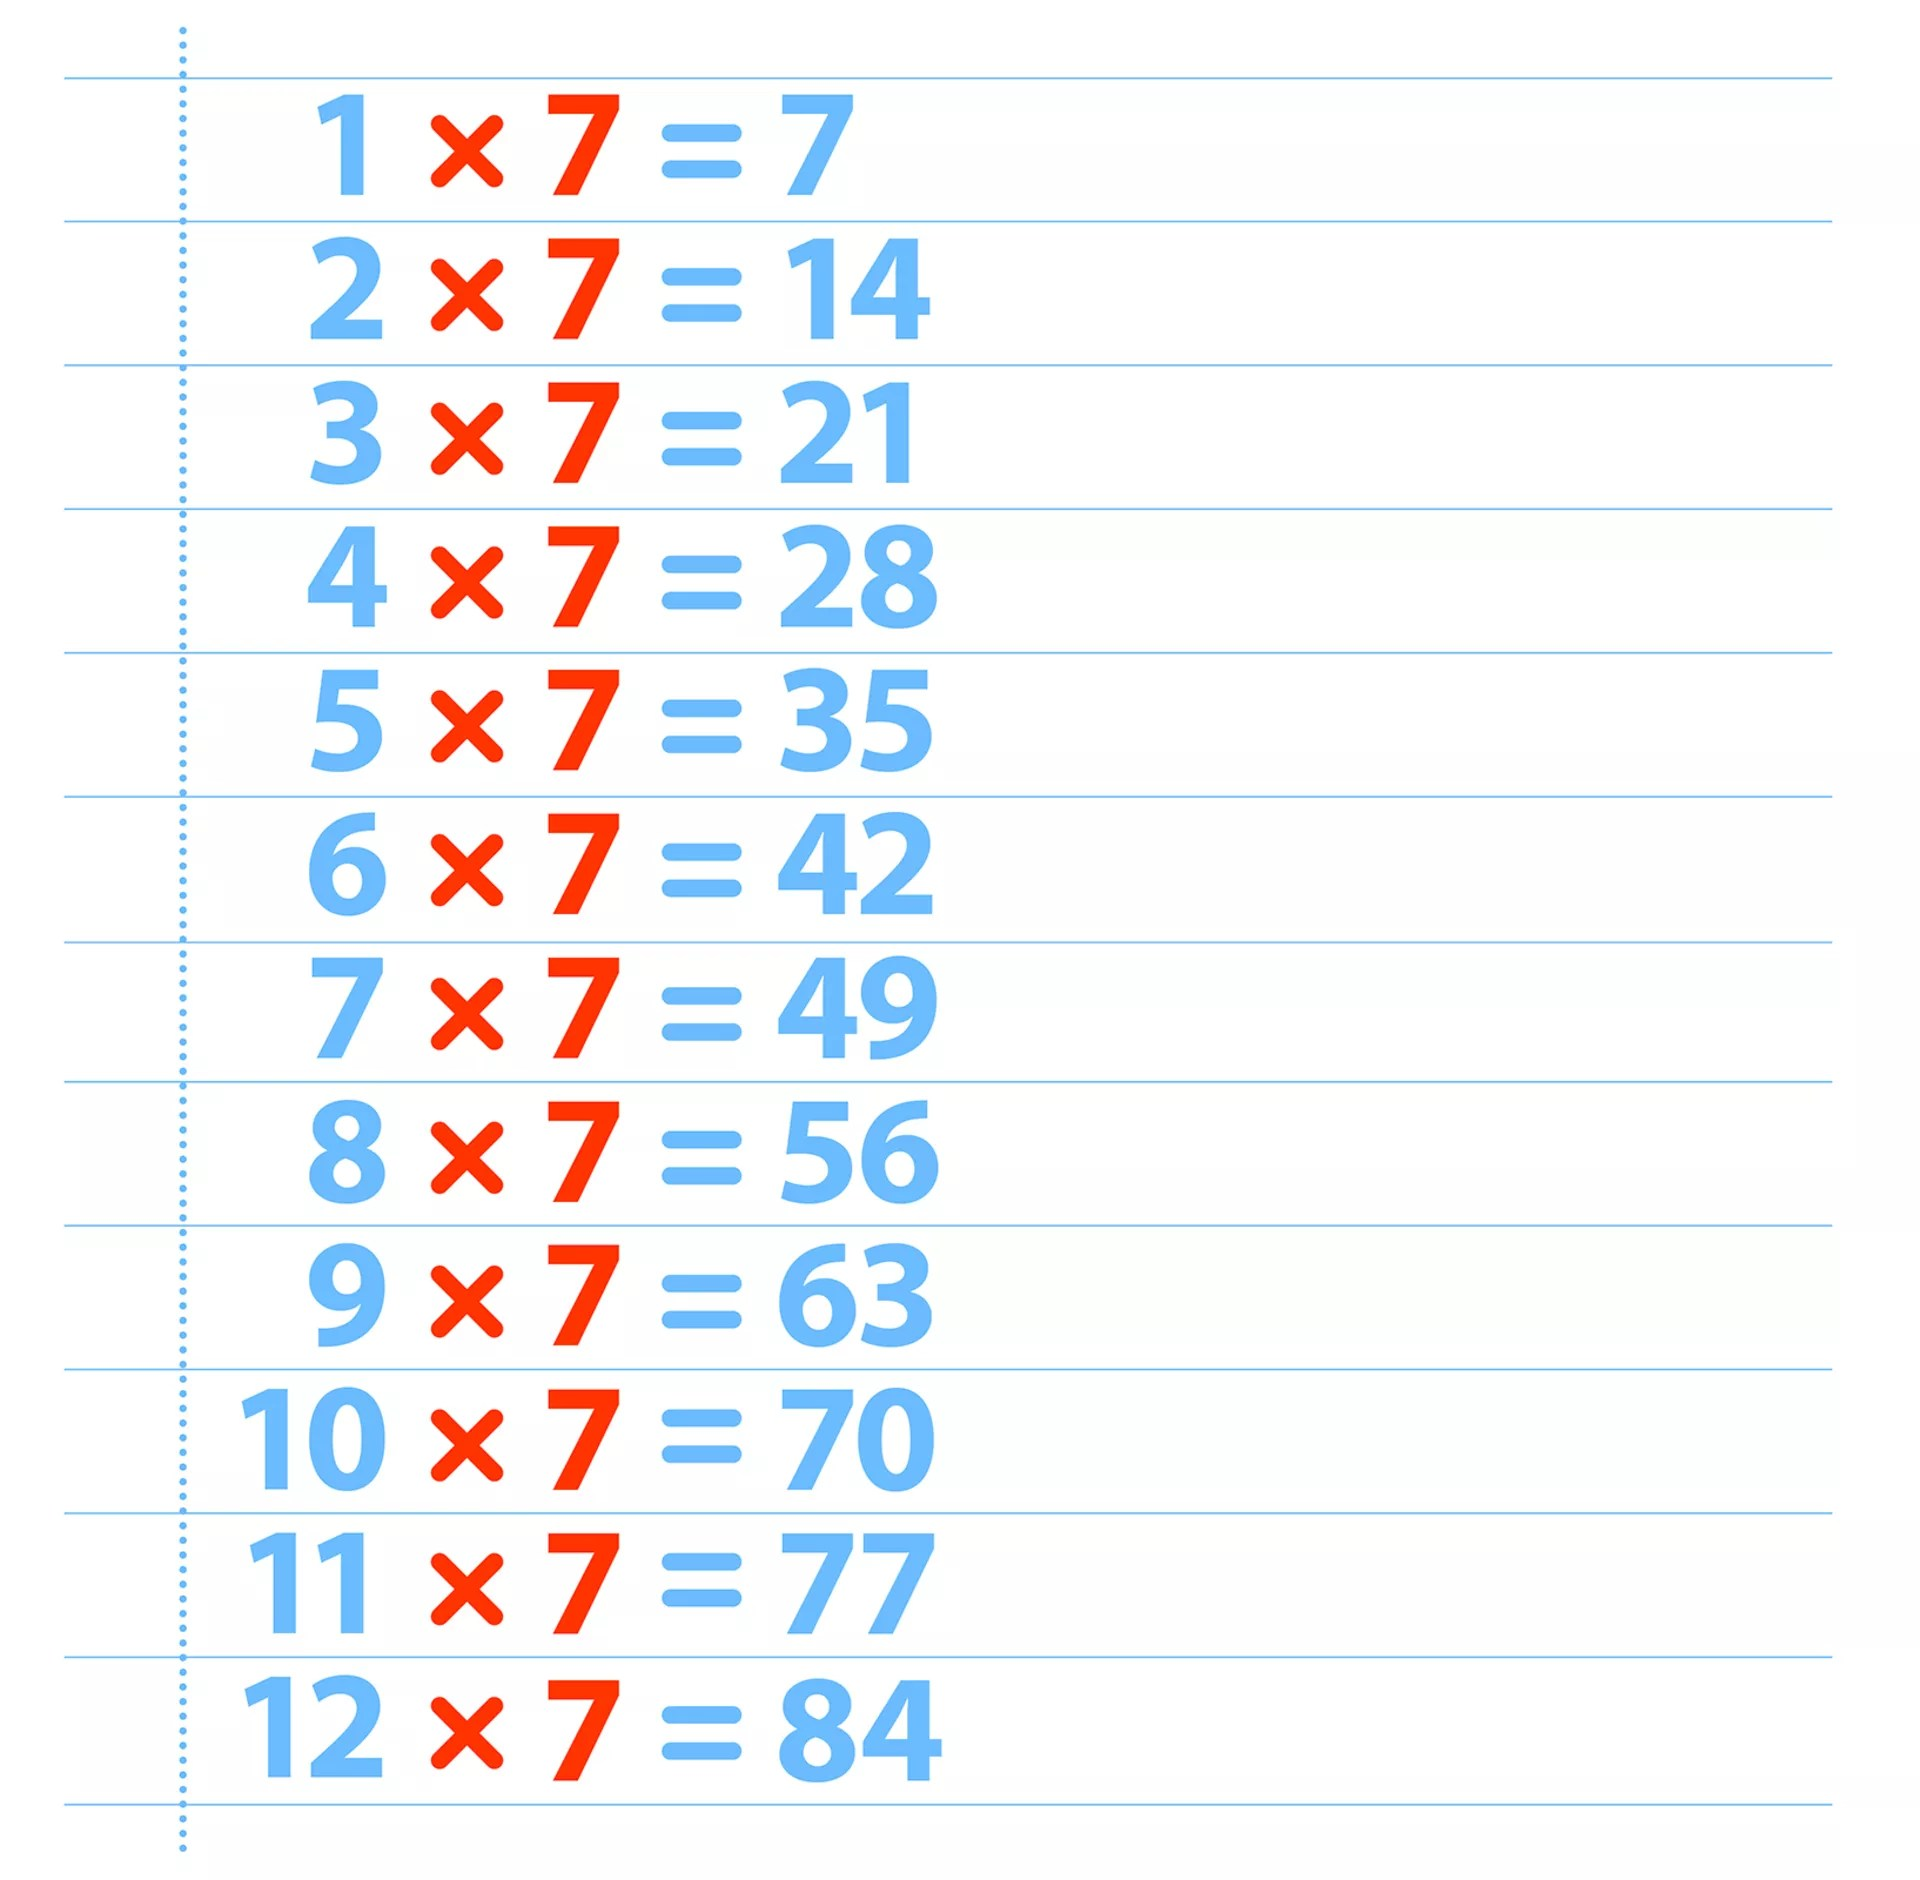 Table Of 7 Times Table Charts 7 12 Tables 7 Times Table Multiplication Chart Exercise On 7